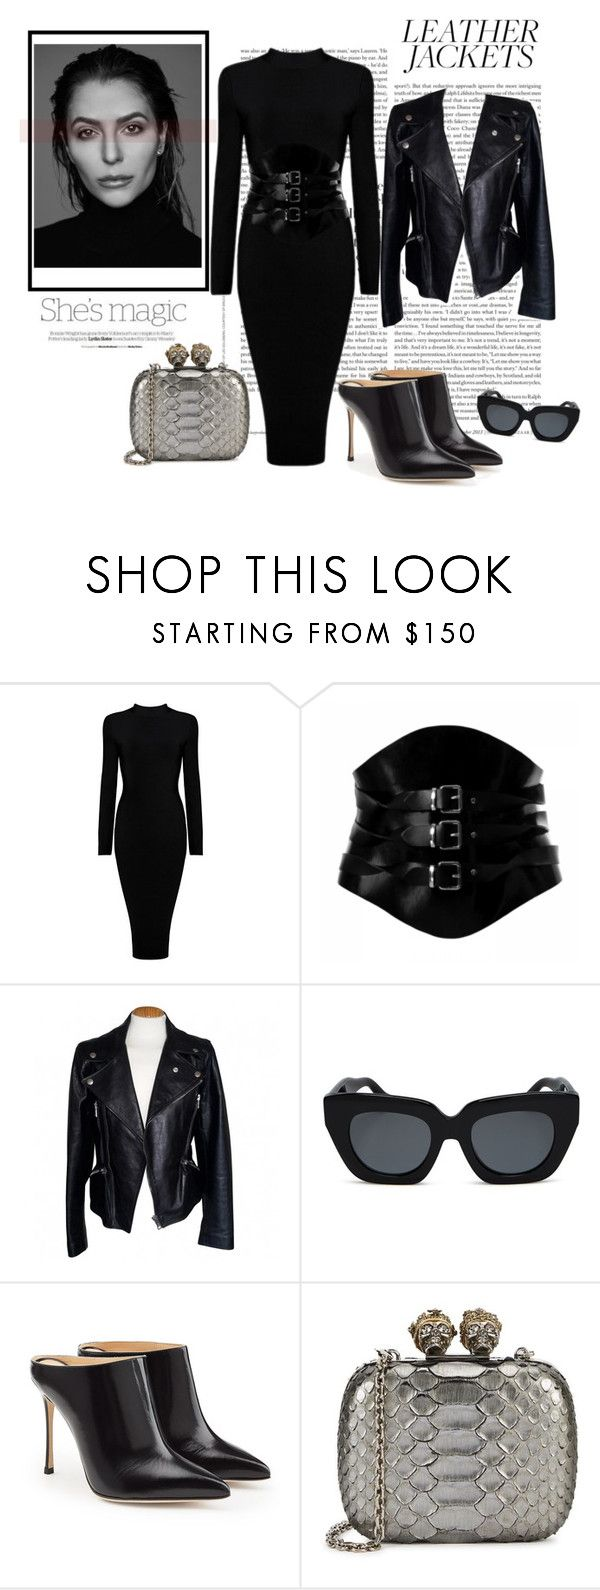 """01.11.17 ""leather jacket"""" by caglatersak ❤ liked on Polyvore featuring Nicole, Alexander McQueen, Gabriella, Sonix, Sergio Rossi, leatherjackets, polyvorecontest and polyvoreset"